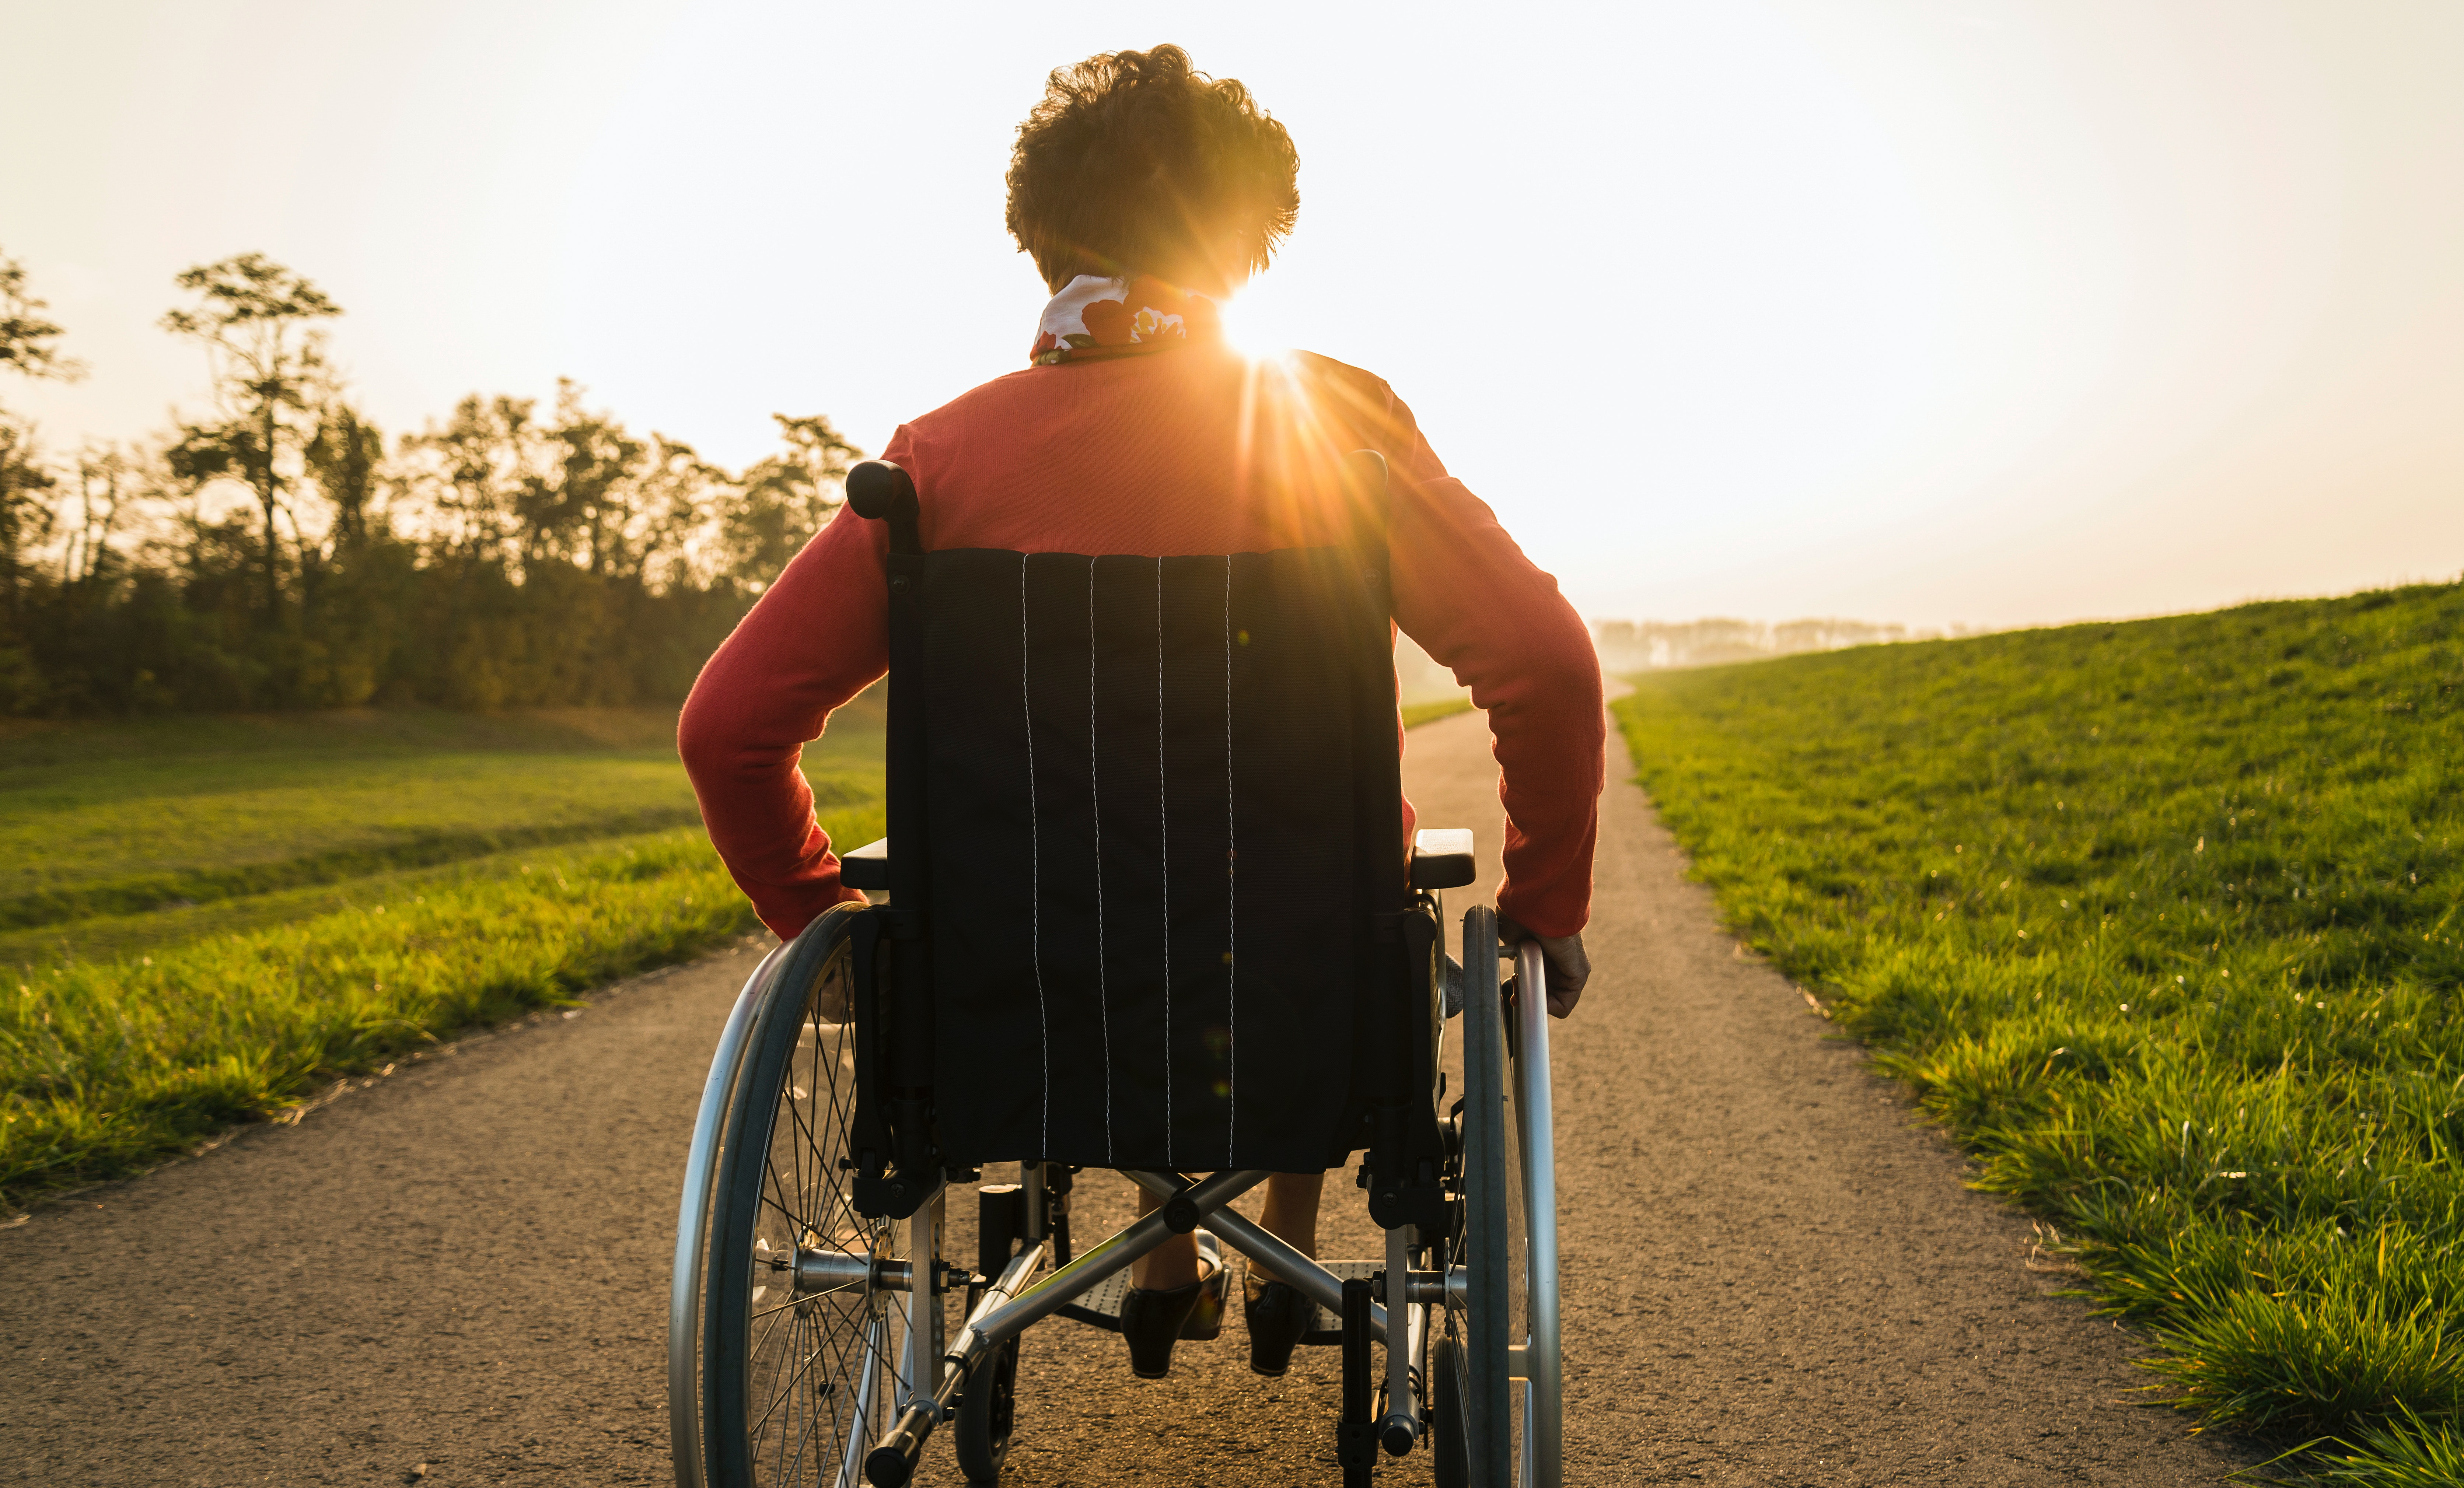 Women With Disabilities Are More Likely to Die of Breast